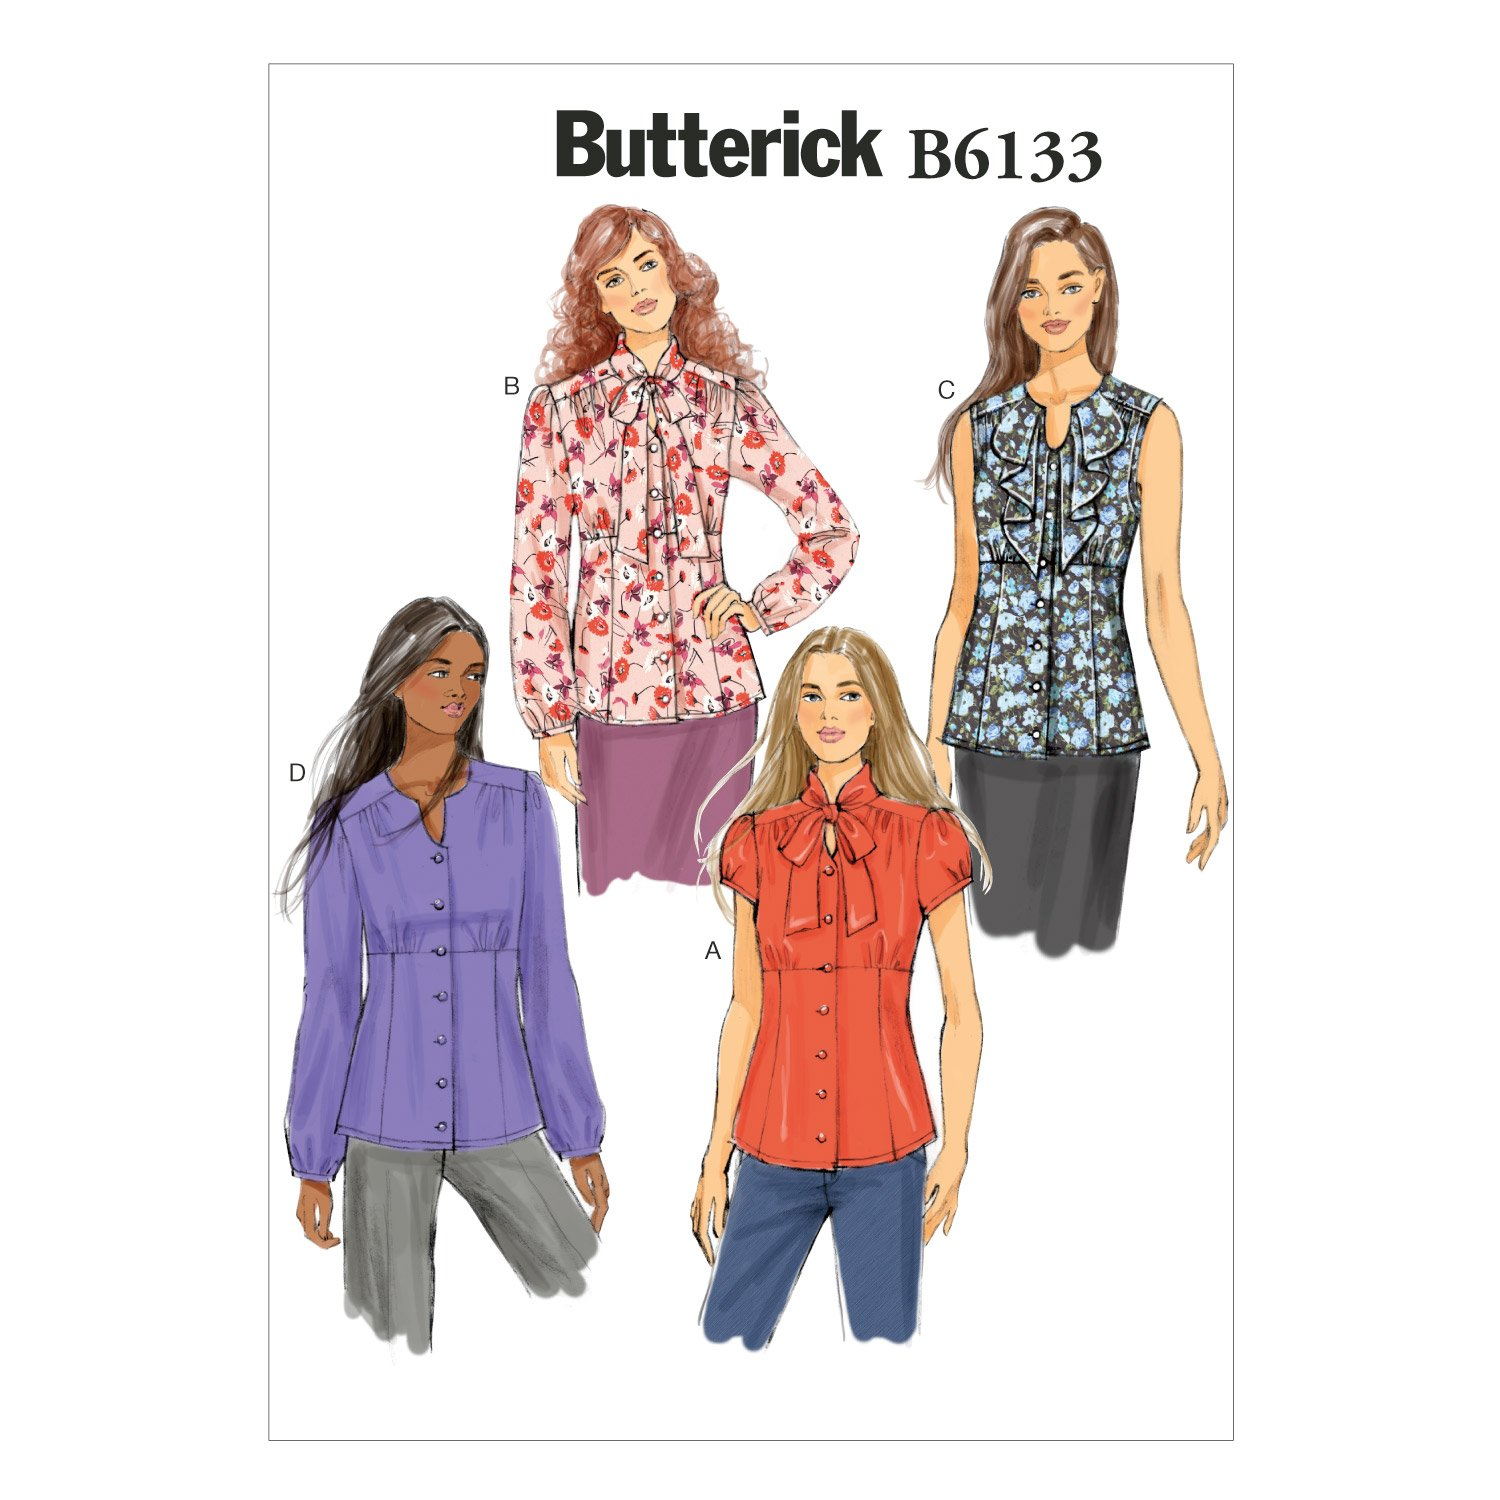 Butterick Patterns B6133 Misses' Blouse Sewing Template, Size A5 (6-8-10-12-14) McCall Pattern Company B6133A50